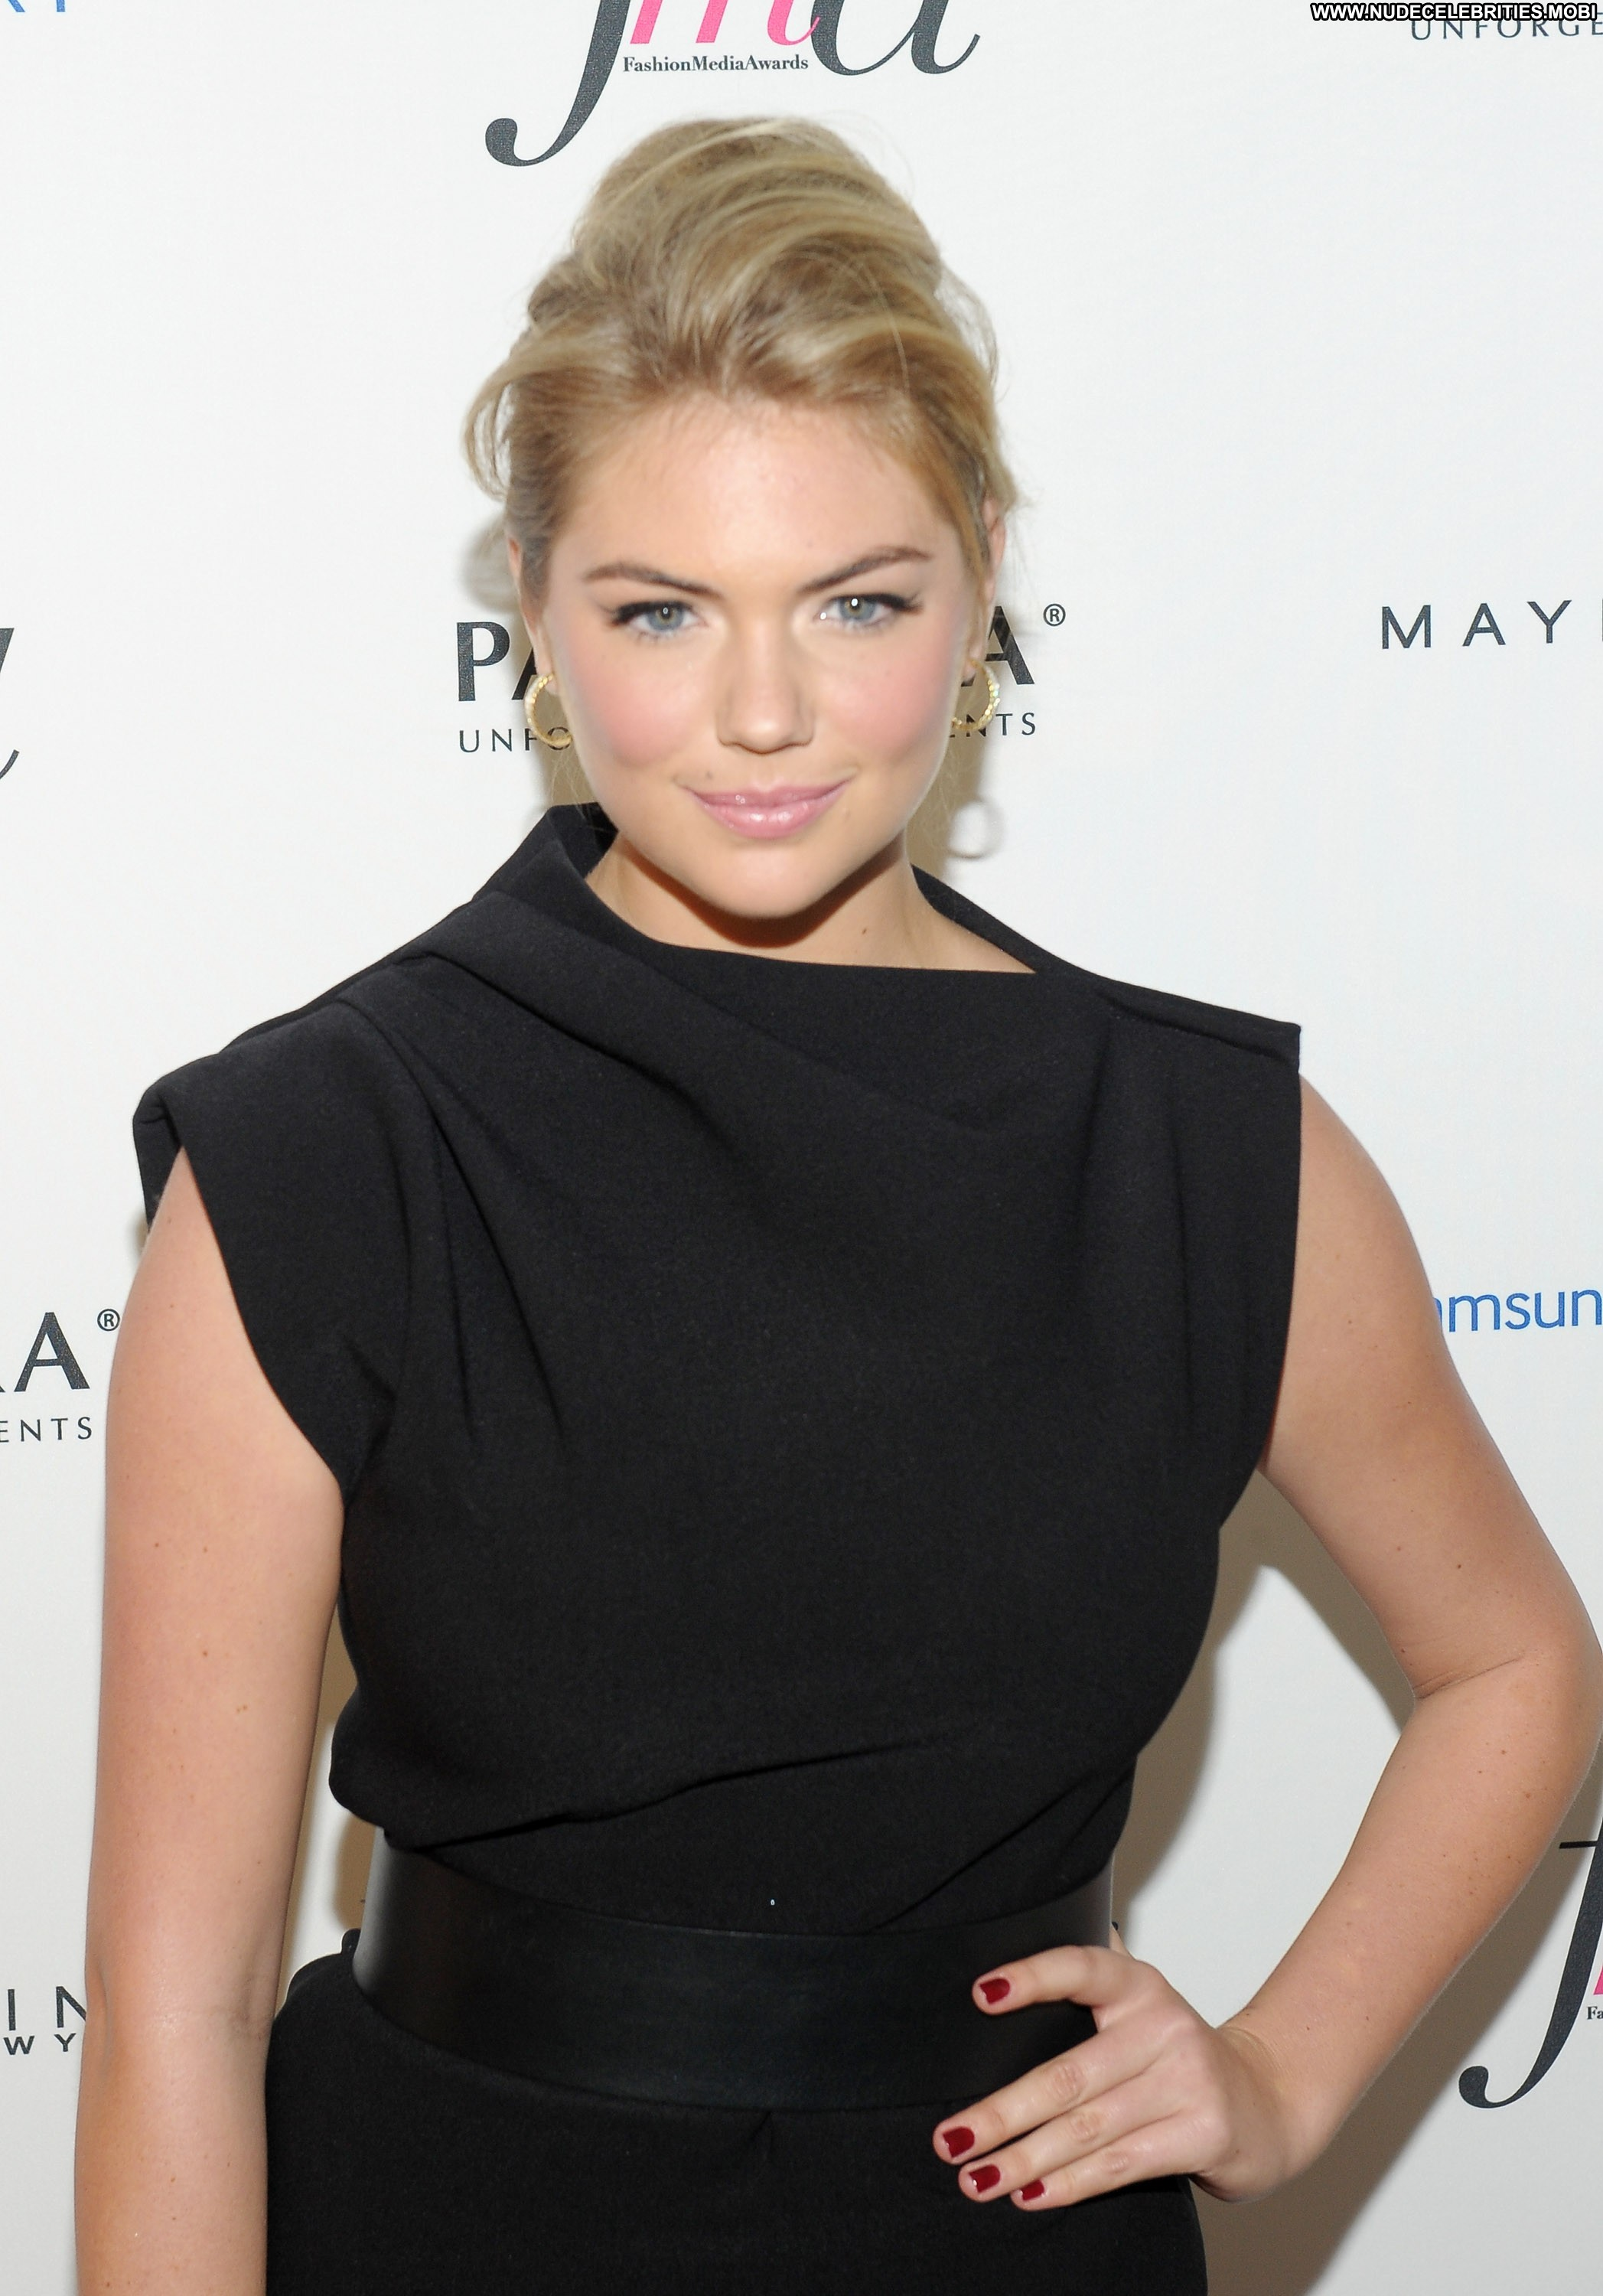 Kate upton, Backgrounds free and Hd picture on Pinterest